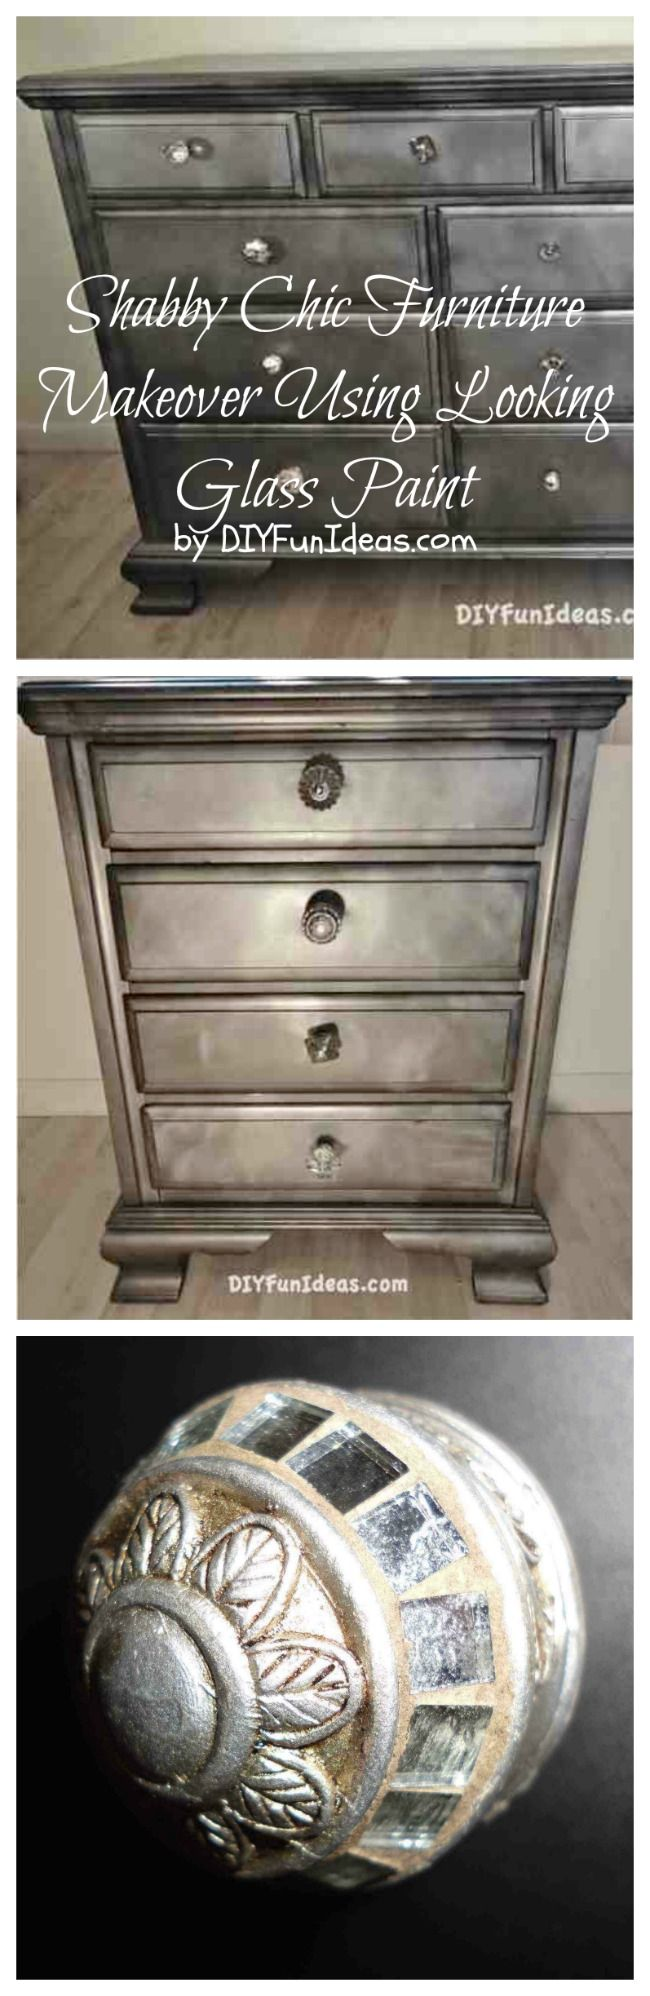 Dresser Makeover Using Krylon Looking Glass Paint